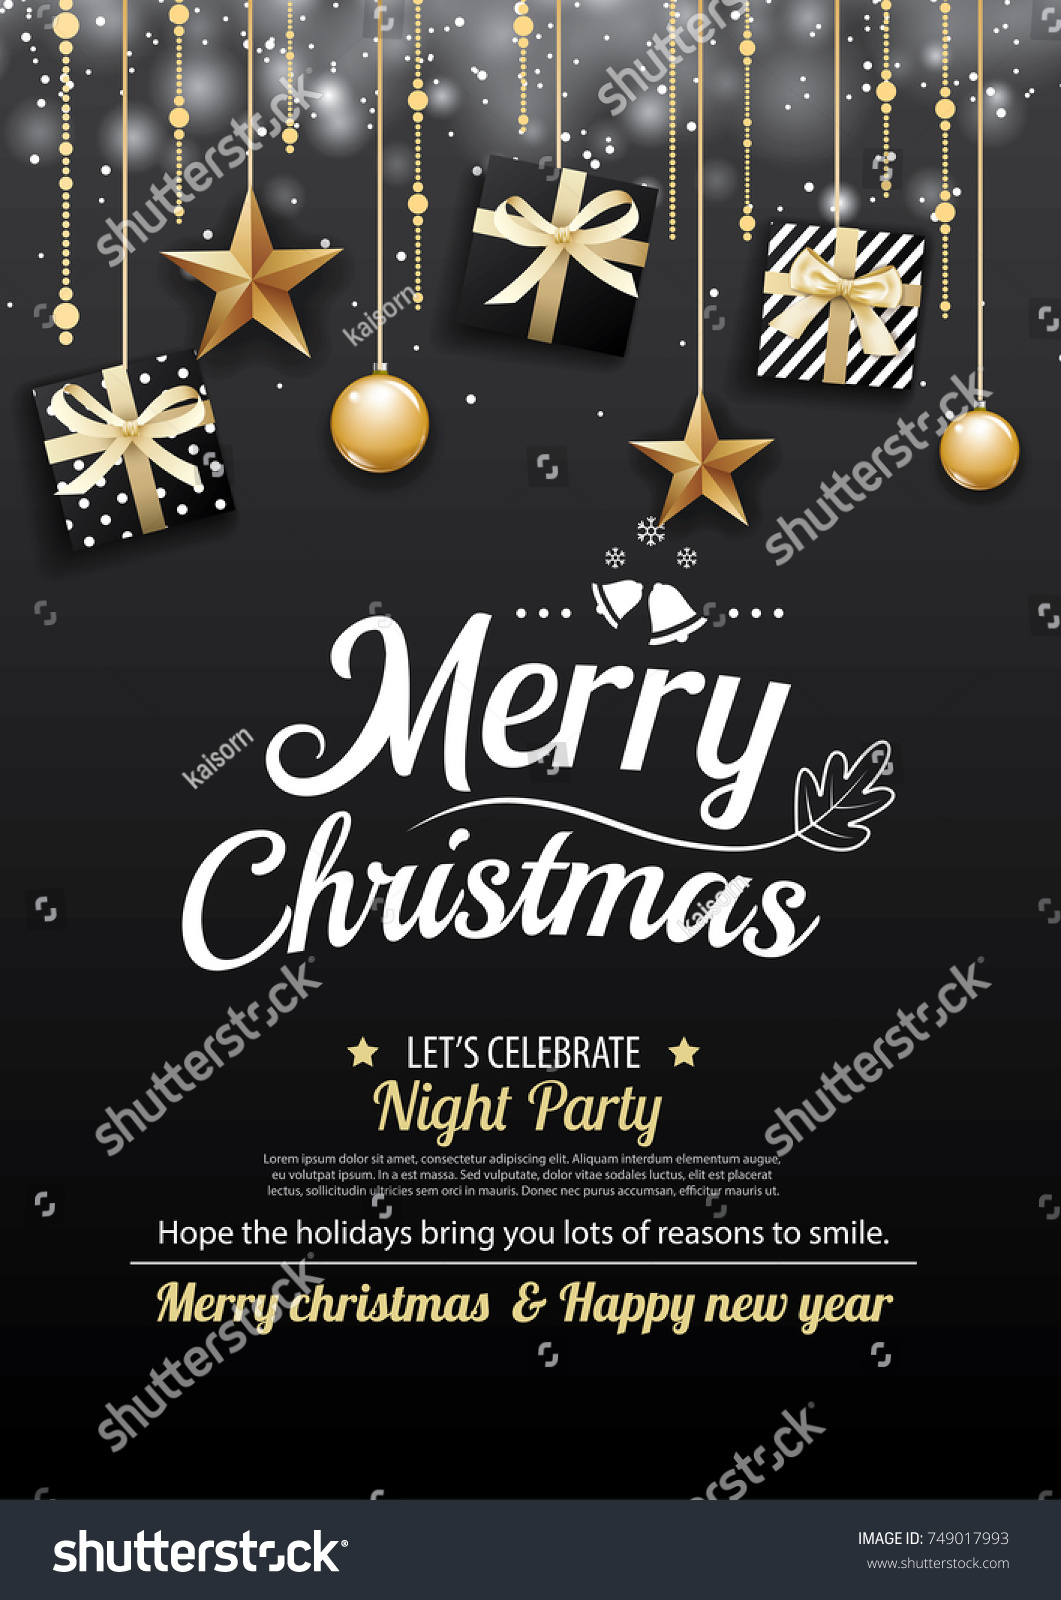 Merry Christmas Party Gift Box On Stock Vector 749017993 - Shutterstock